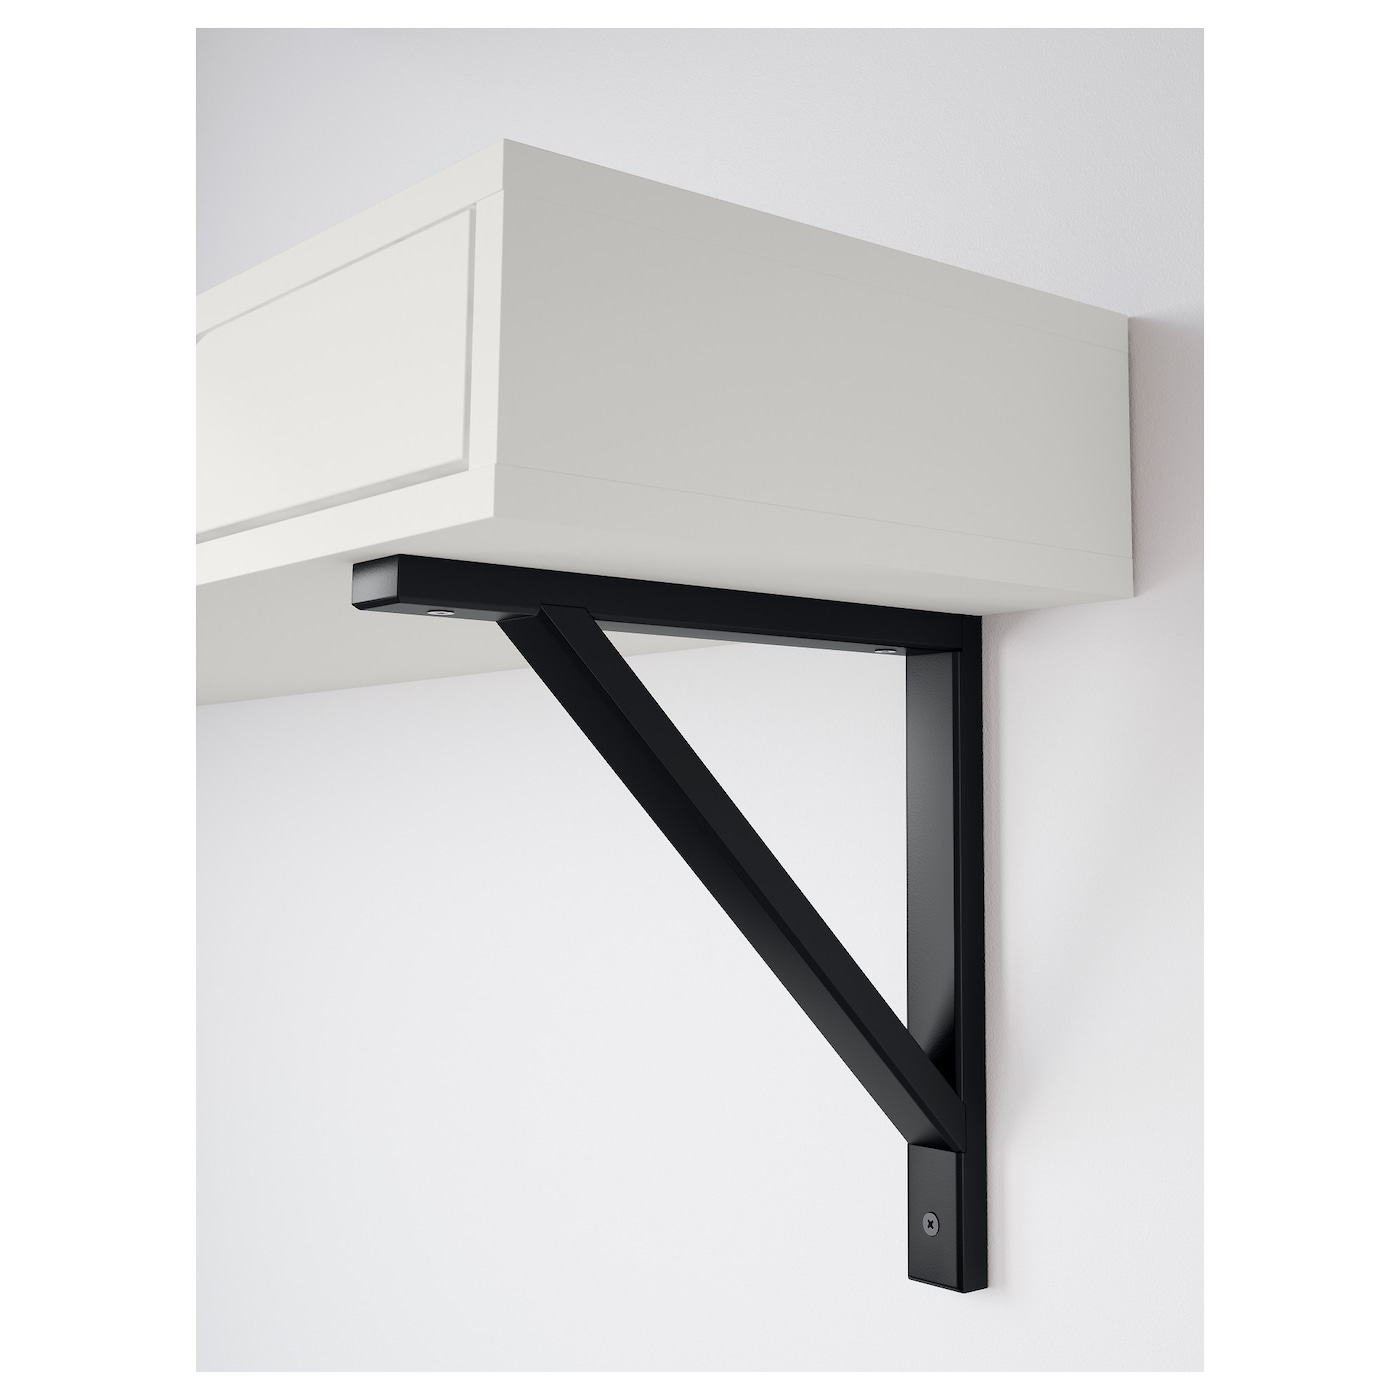 IKEA EKBY VALTER bracket Solid wood is a durable natural material.